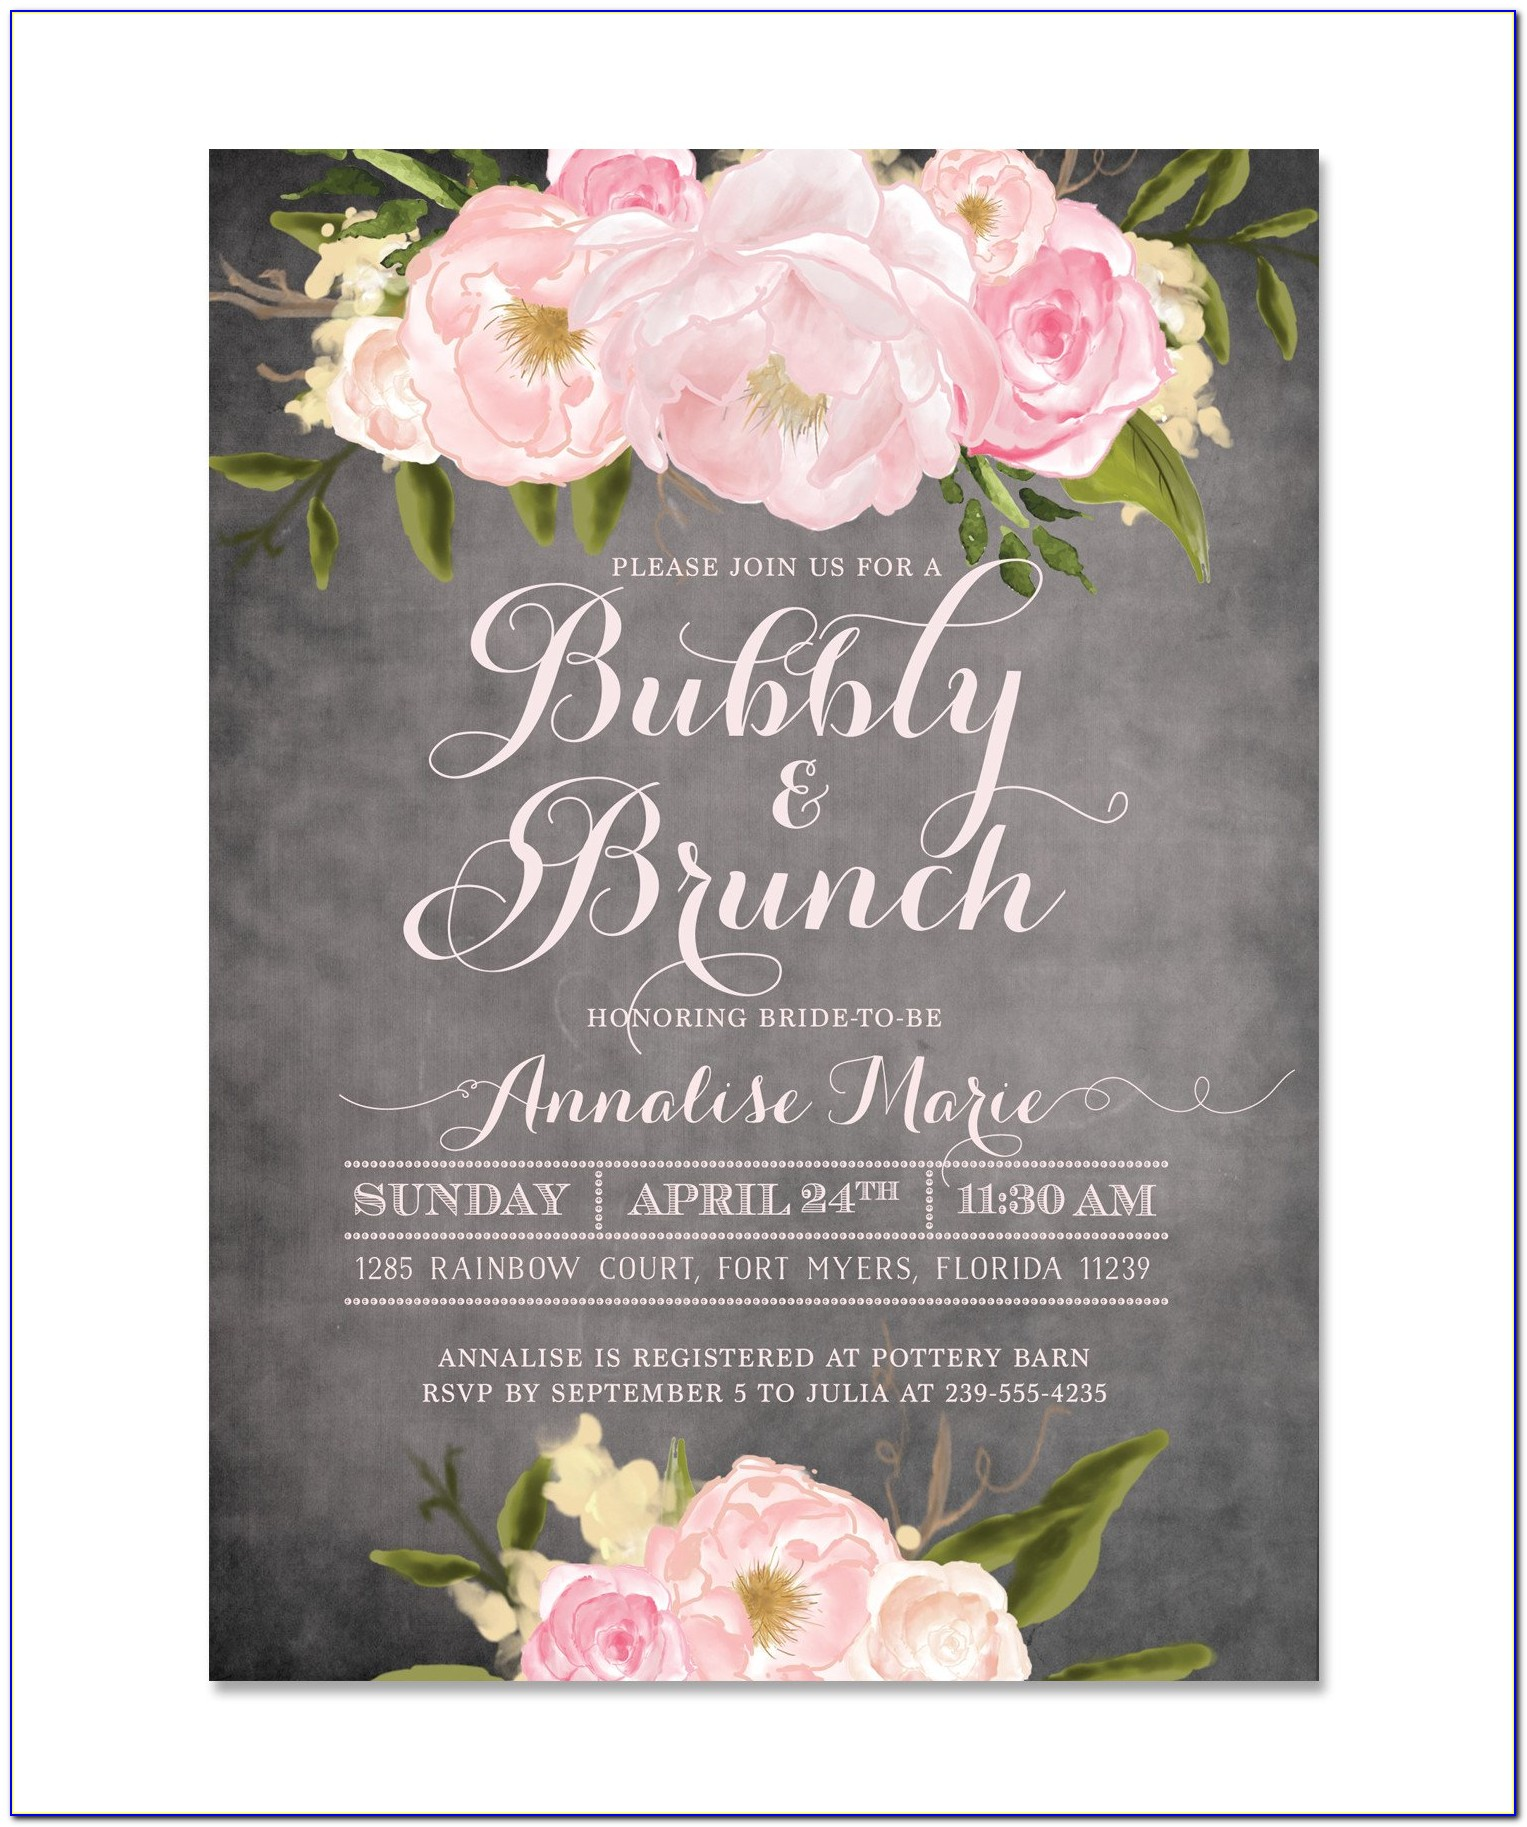 Bridal Brunch And Bubbly Invitations